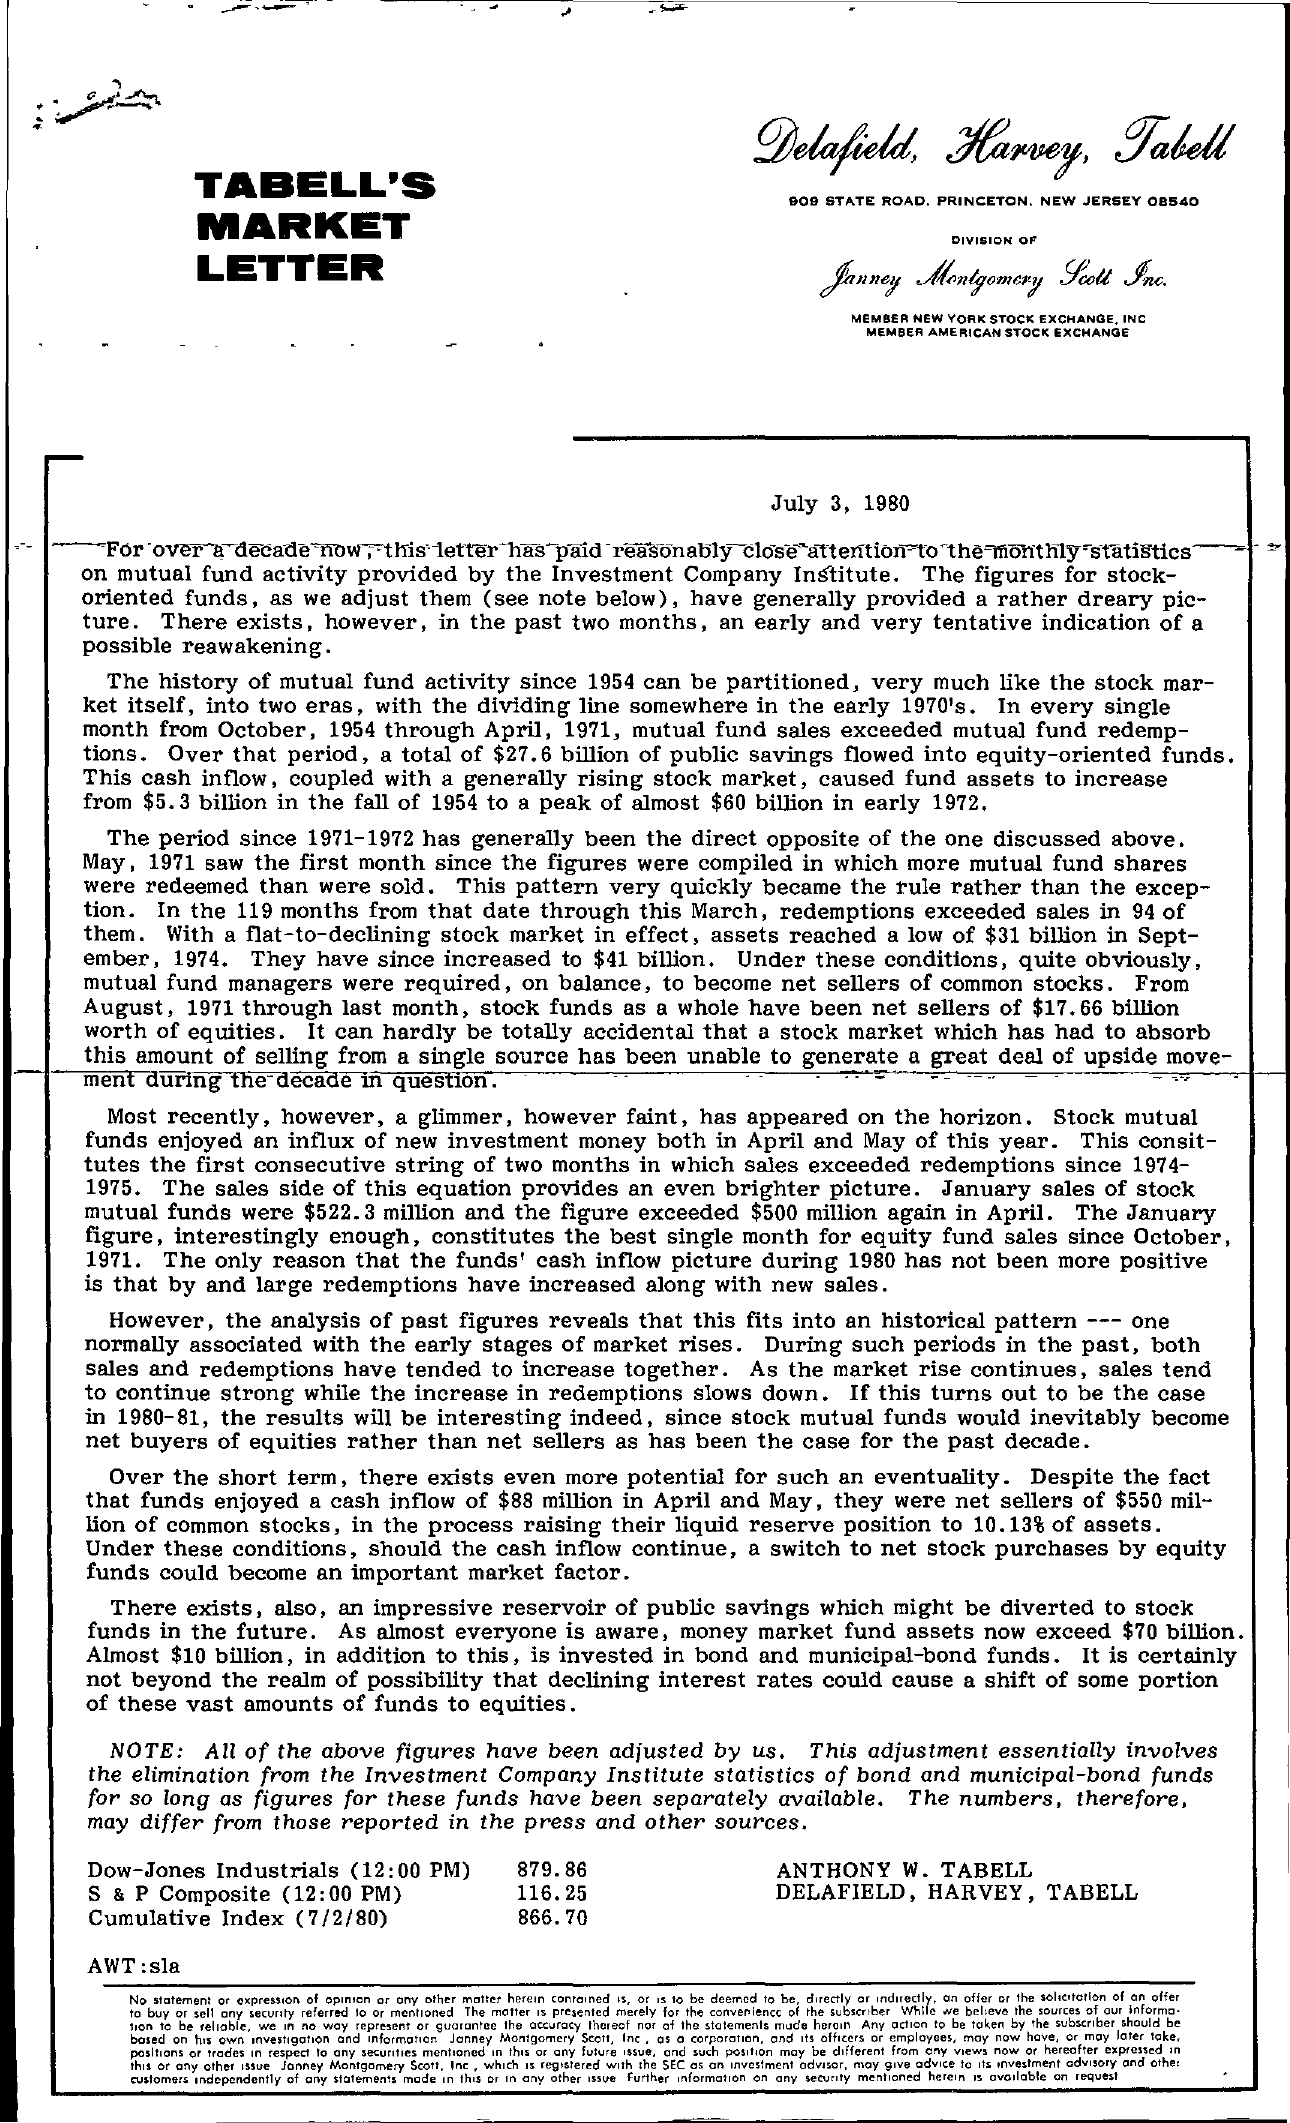 Tabell's Market Letter - July 03, 1980